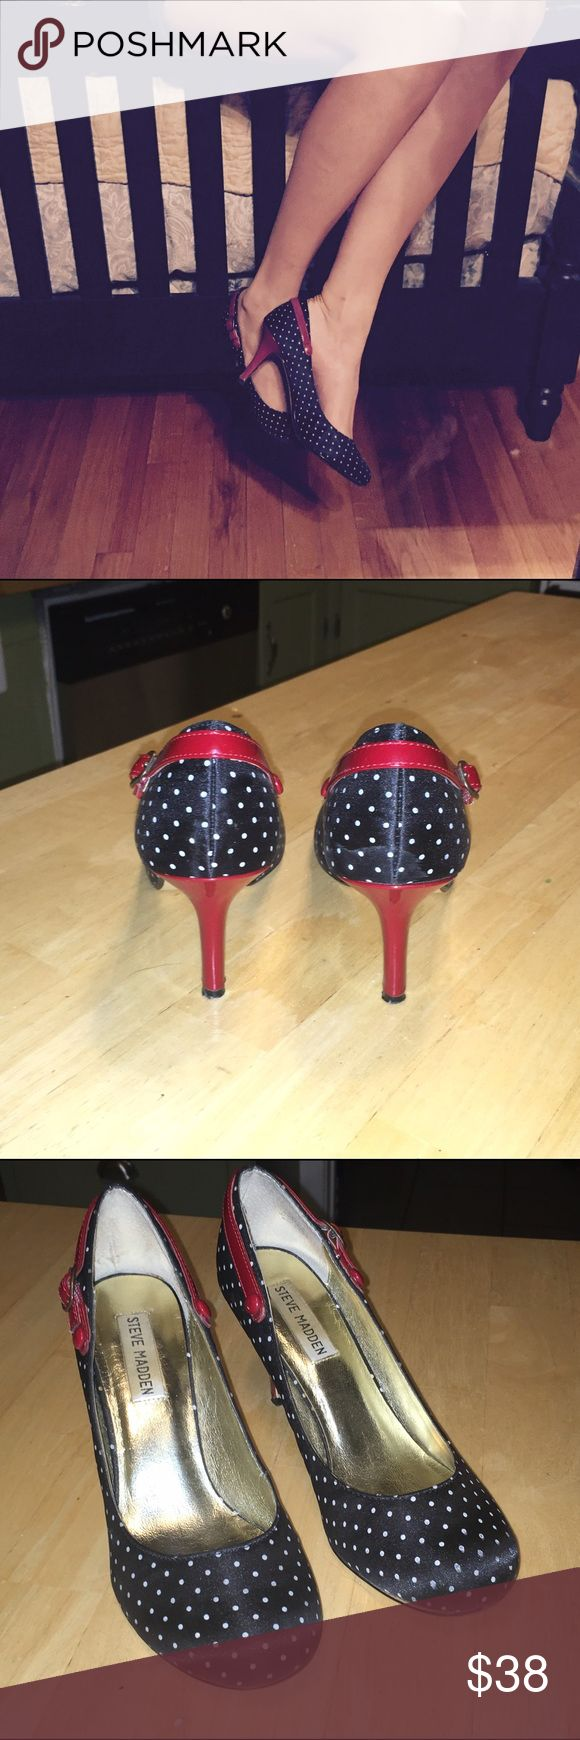 Steve Madden Pumps Black with white polk-a-dot pumps with ruby red heels and decorative straps. Steve Madden Shoes Heels